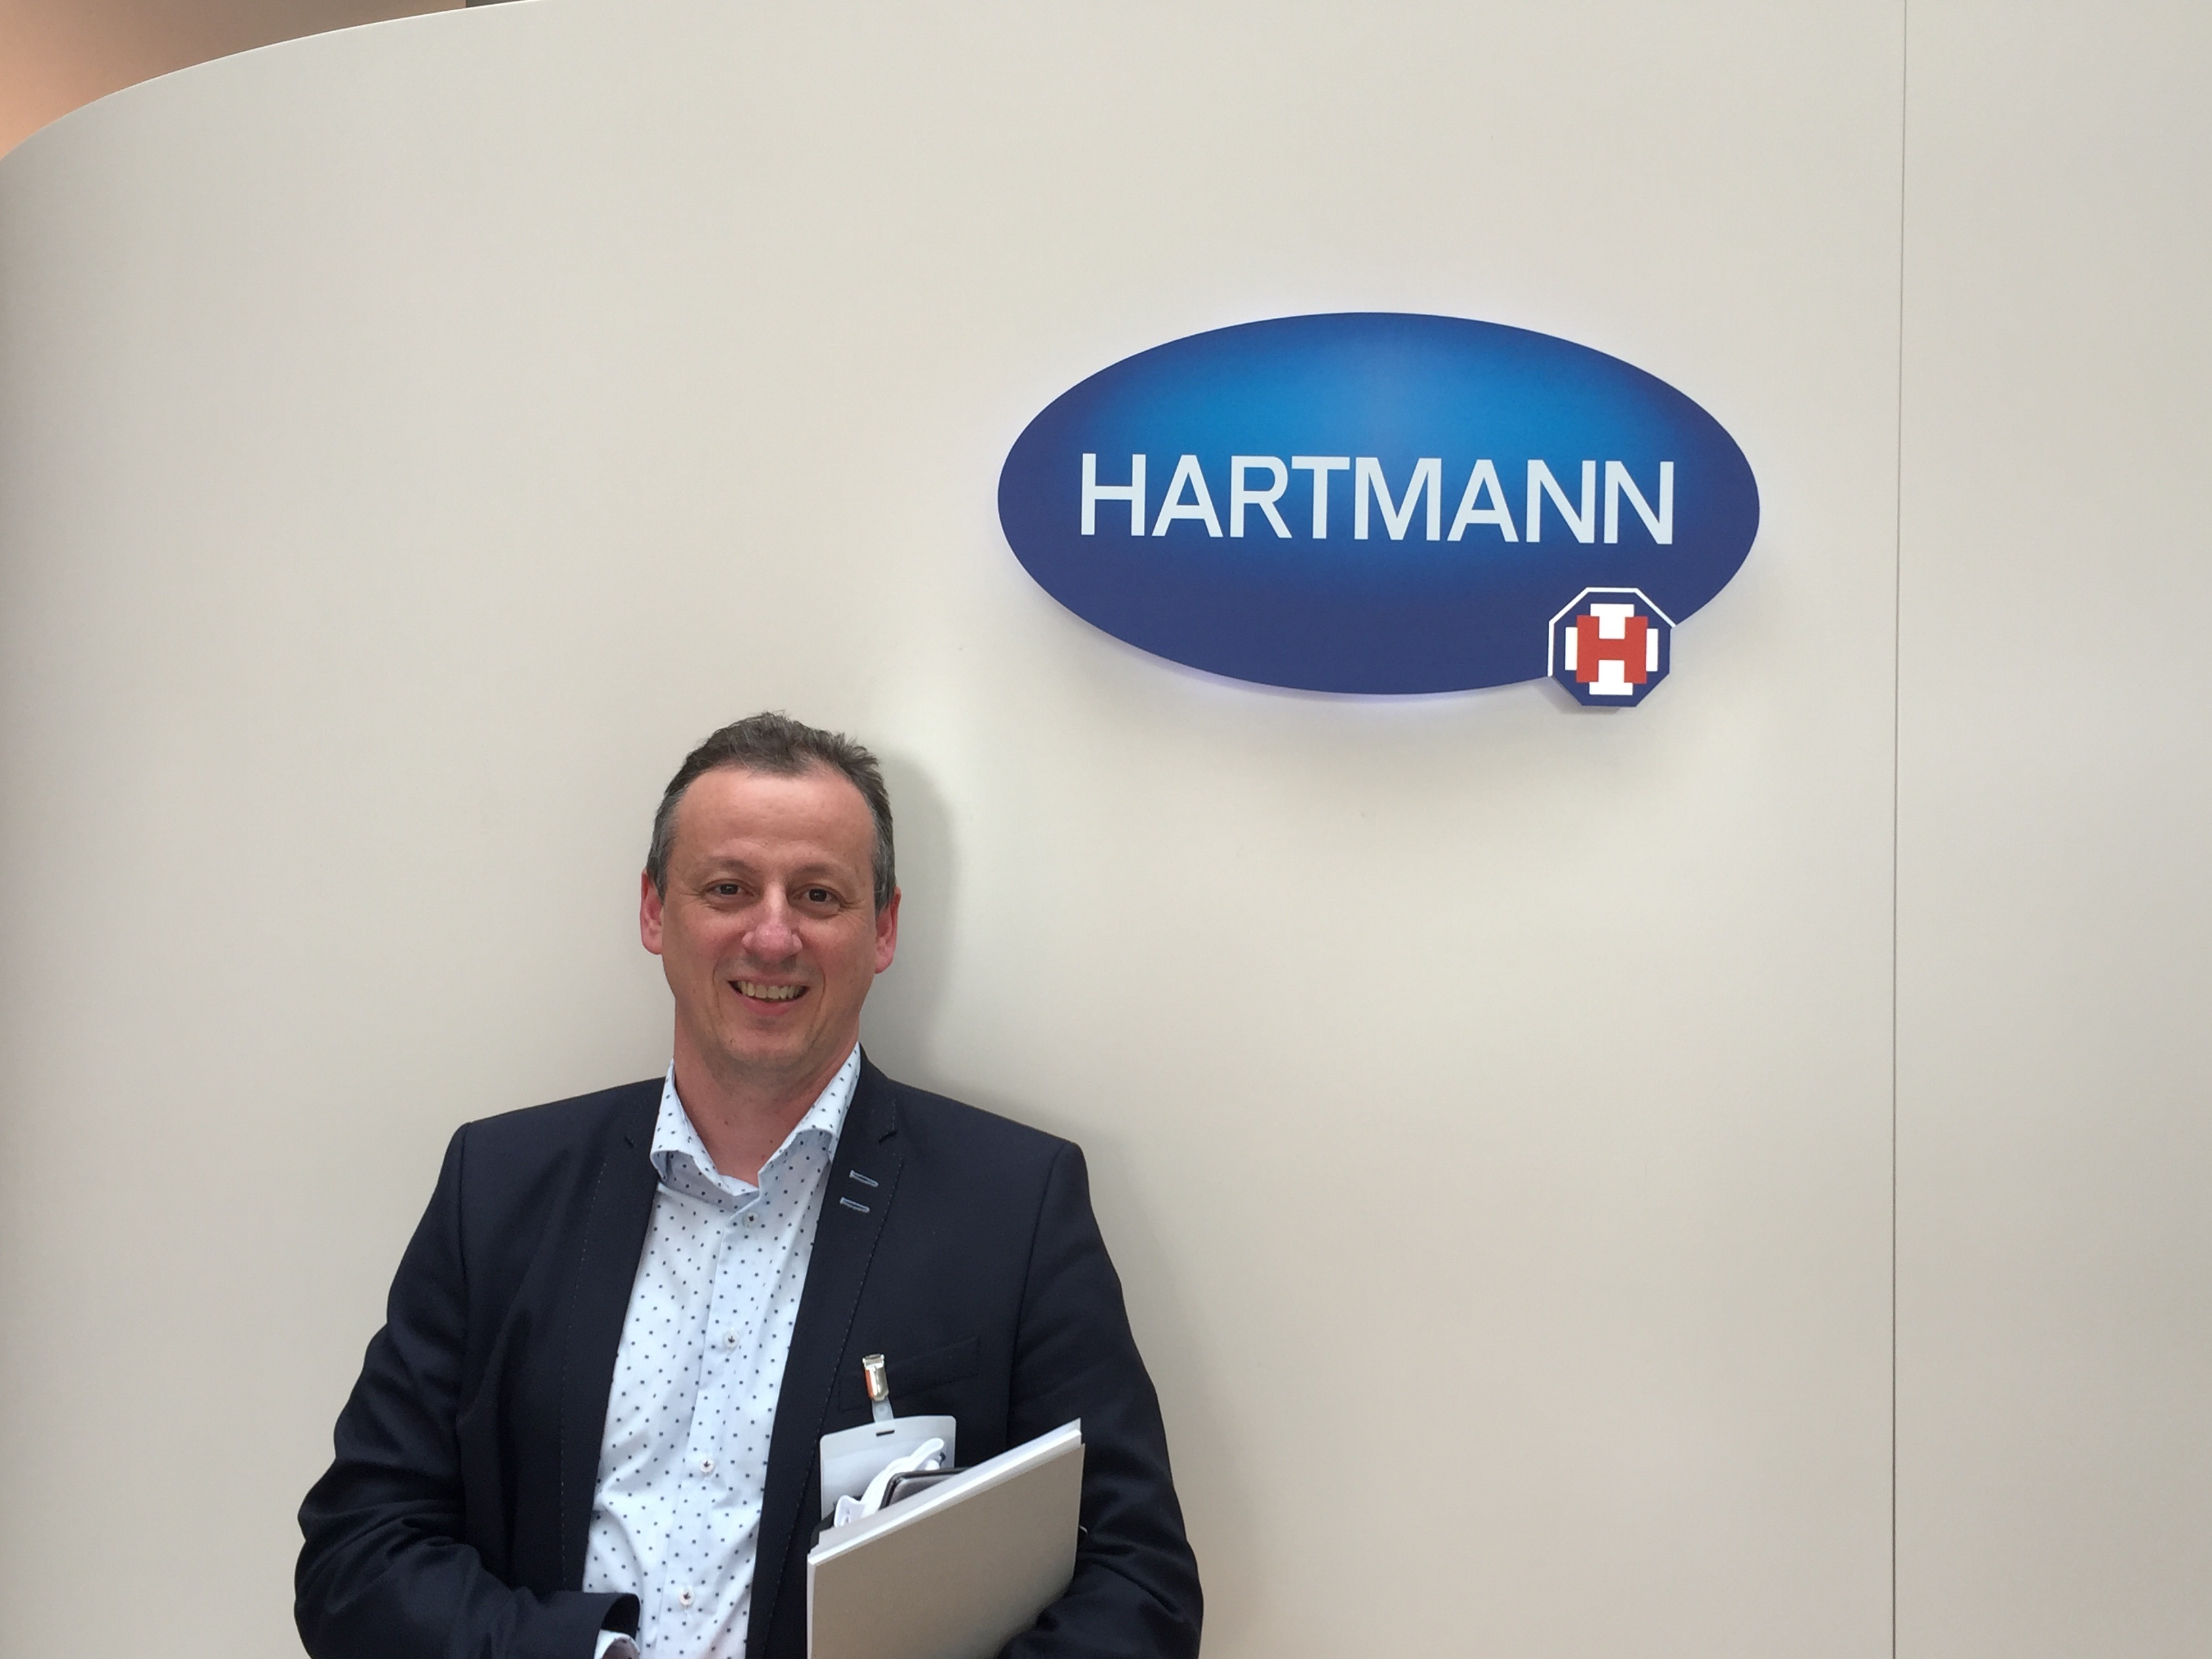 Stefan Brosens, HARTMANN Business Unit Manager